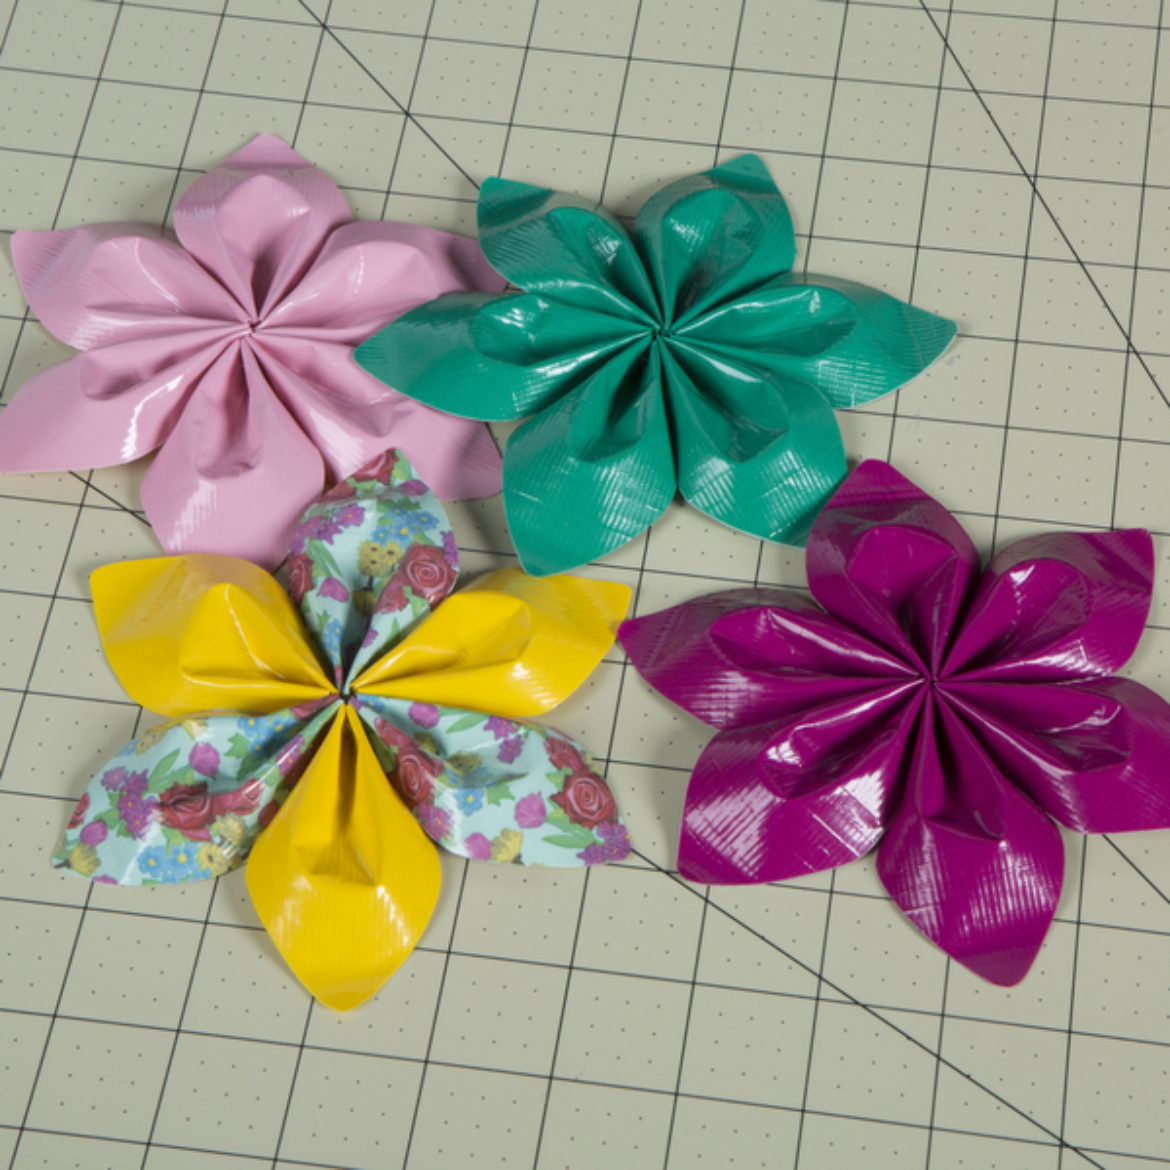 previous steps repeate to make more flowers of varying colors